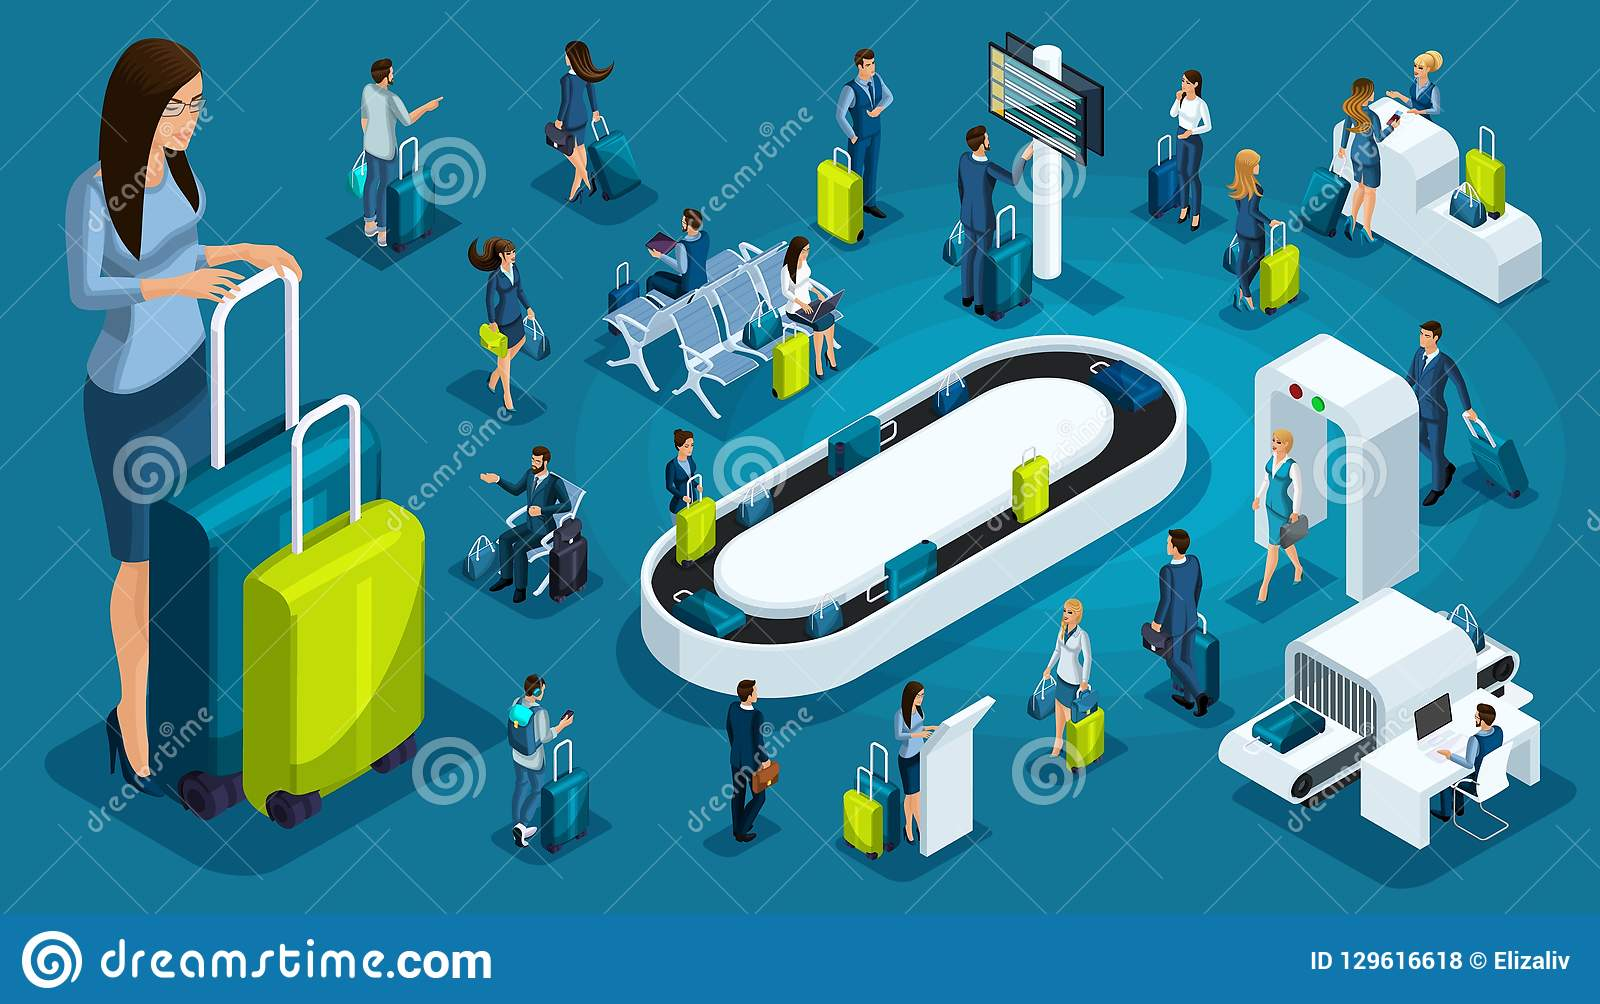 Isometric set international airport icons, passengers with luggage, big business lady on a business trip, transit zone, air lines